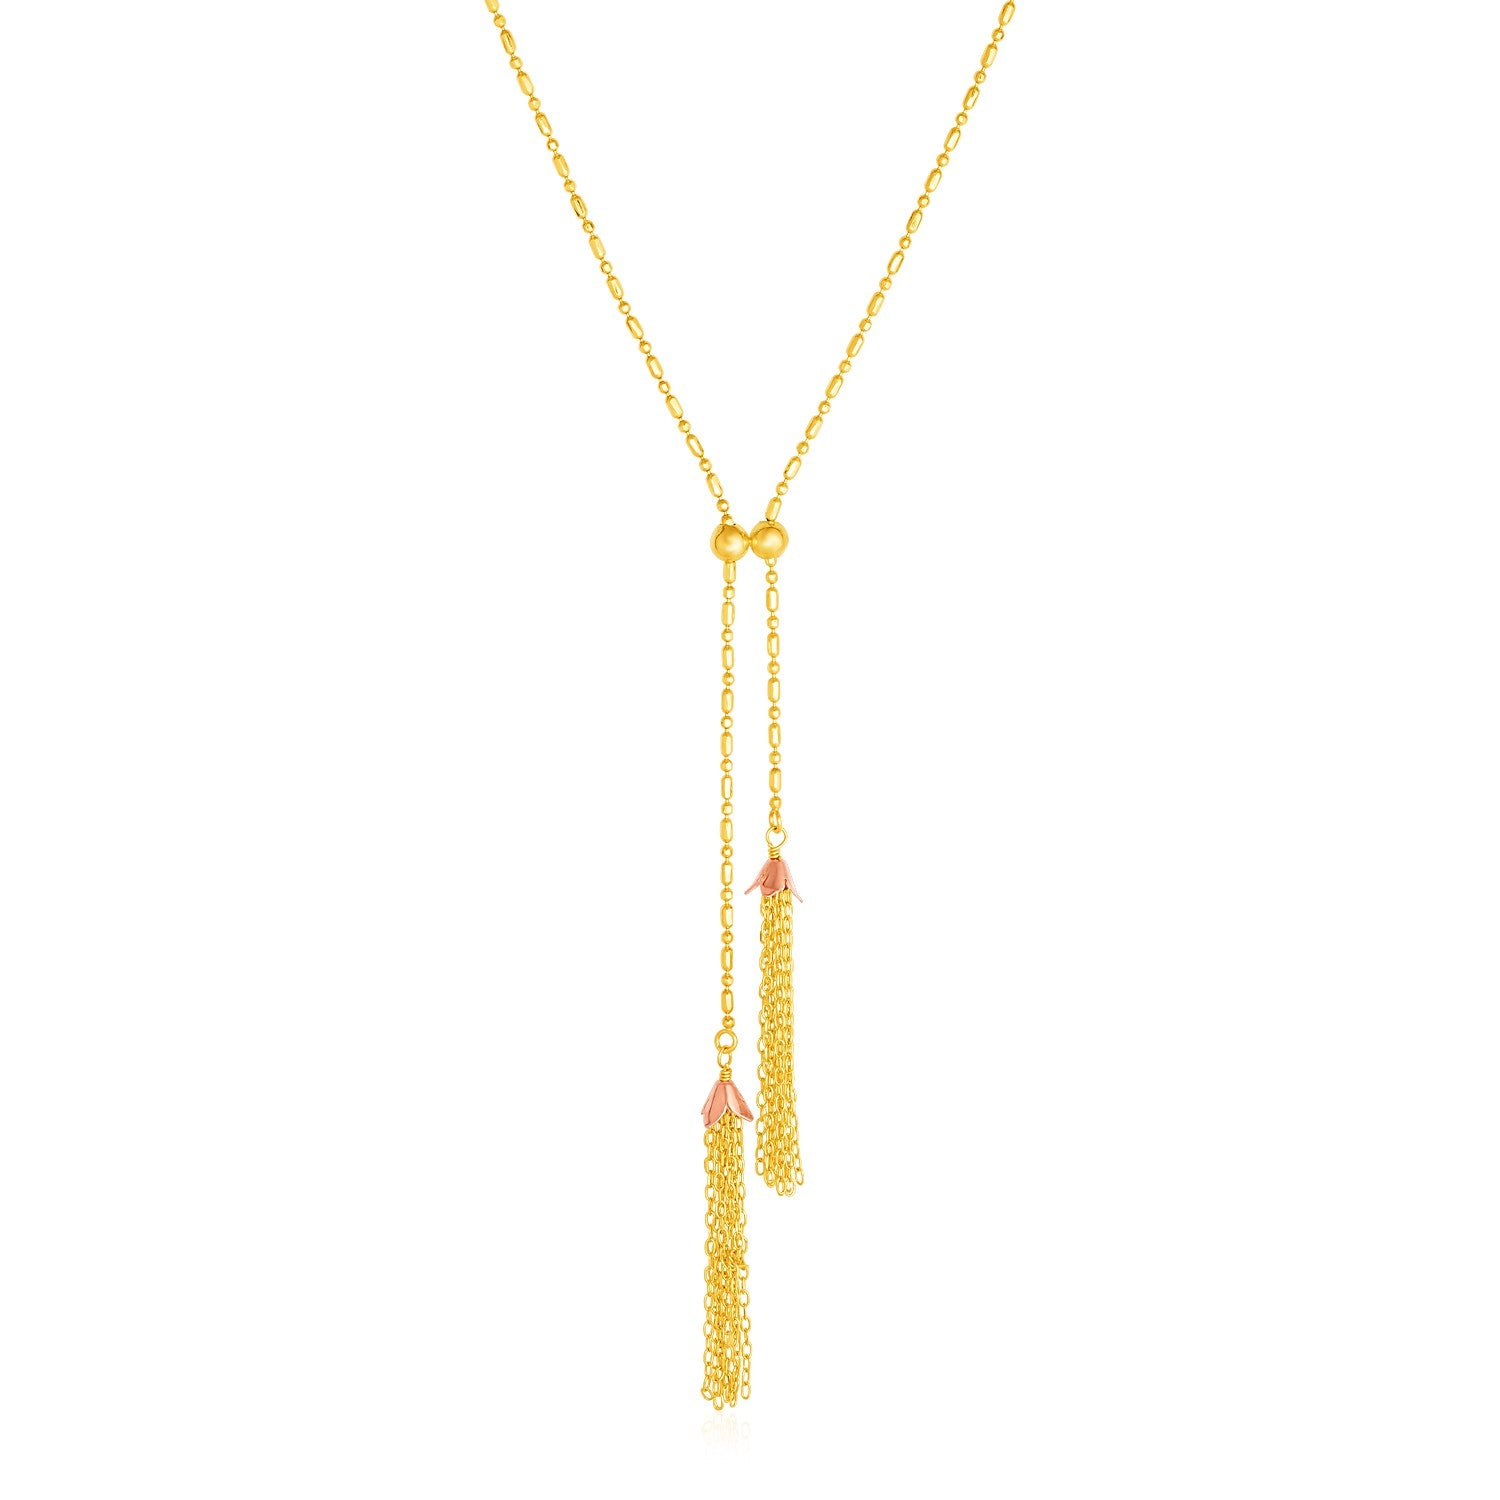 14k Two Tone Gold Lariat Necklace with Tassels